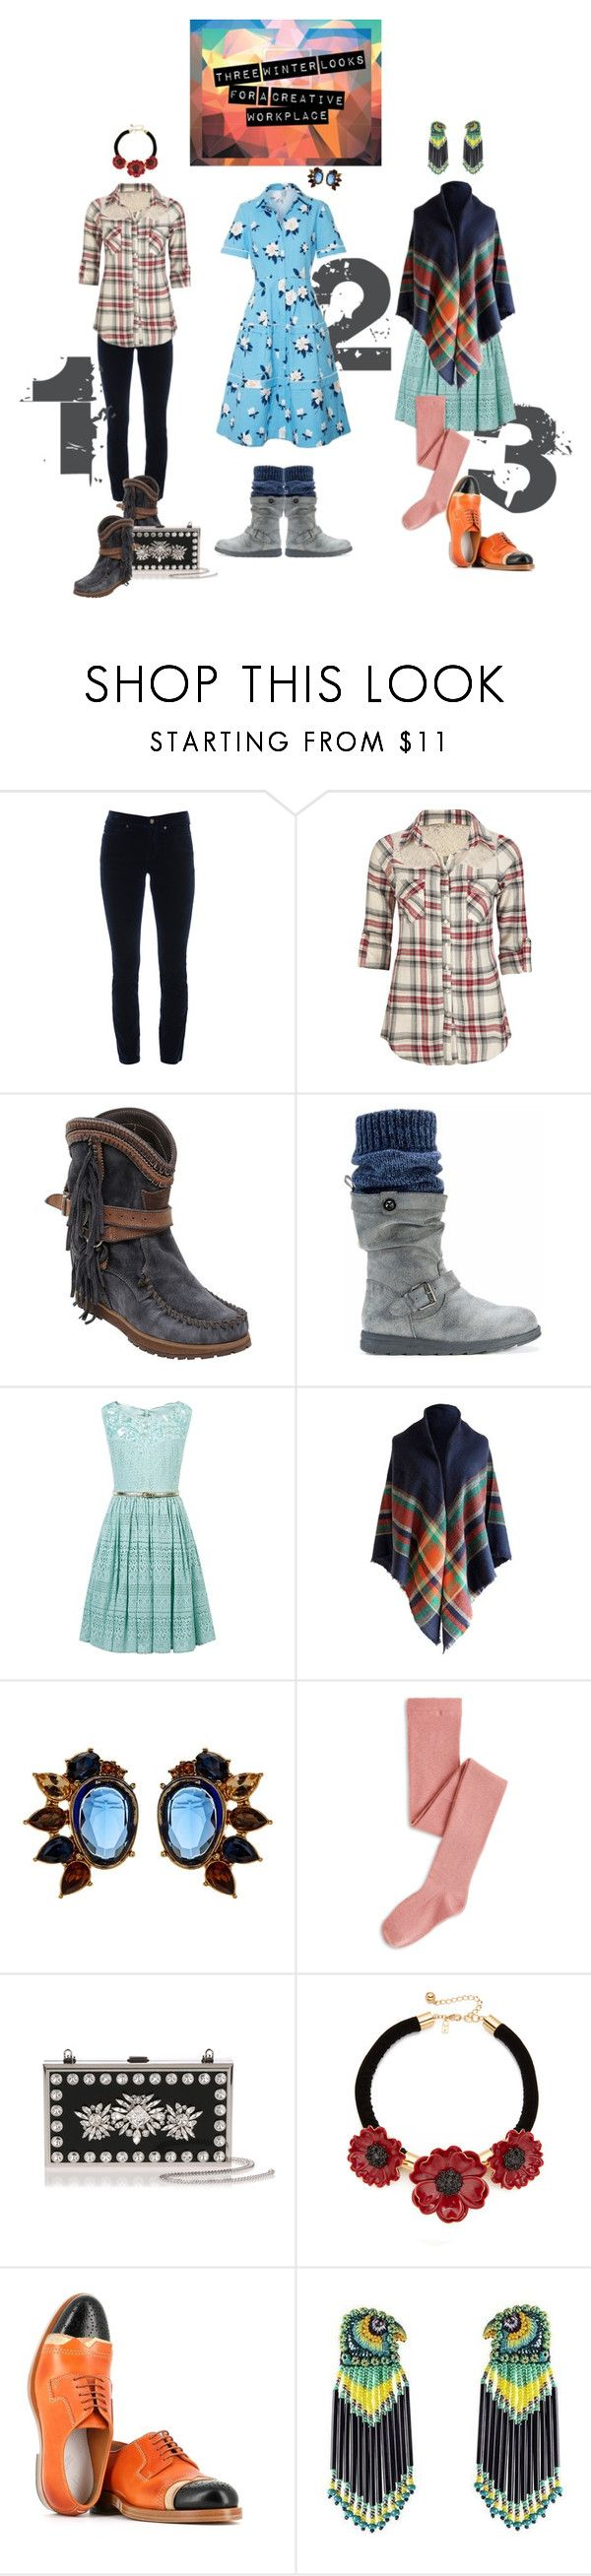 """""""monday, tuesday, wednesday"""" by meadowbat ❤ liked on Polyvore featuring Cambio, Full Tilt, El Vaquero, M:UK, Monsoon, Carolee, Manolo Blahnik, Kate Spade, Maison Margiela and Forest of Chintz"""